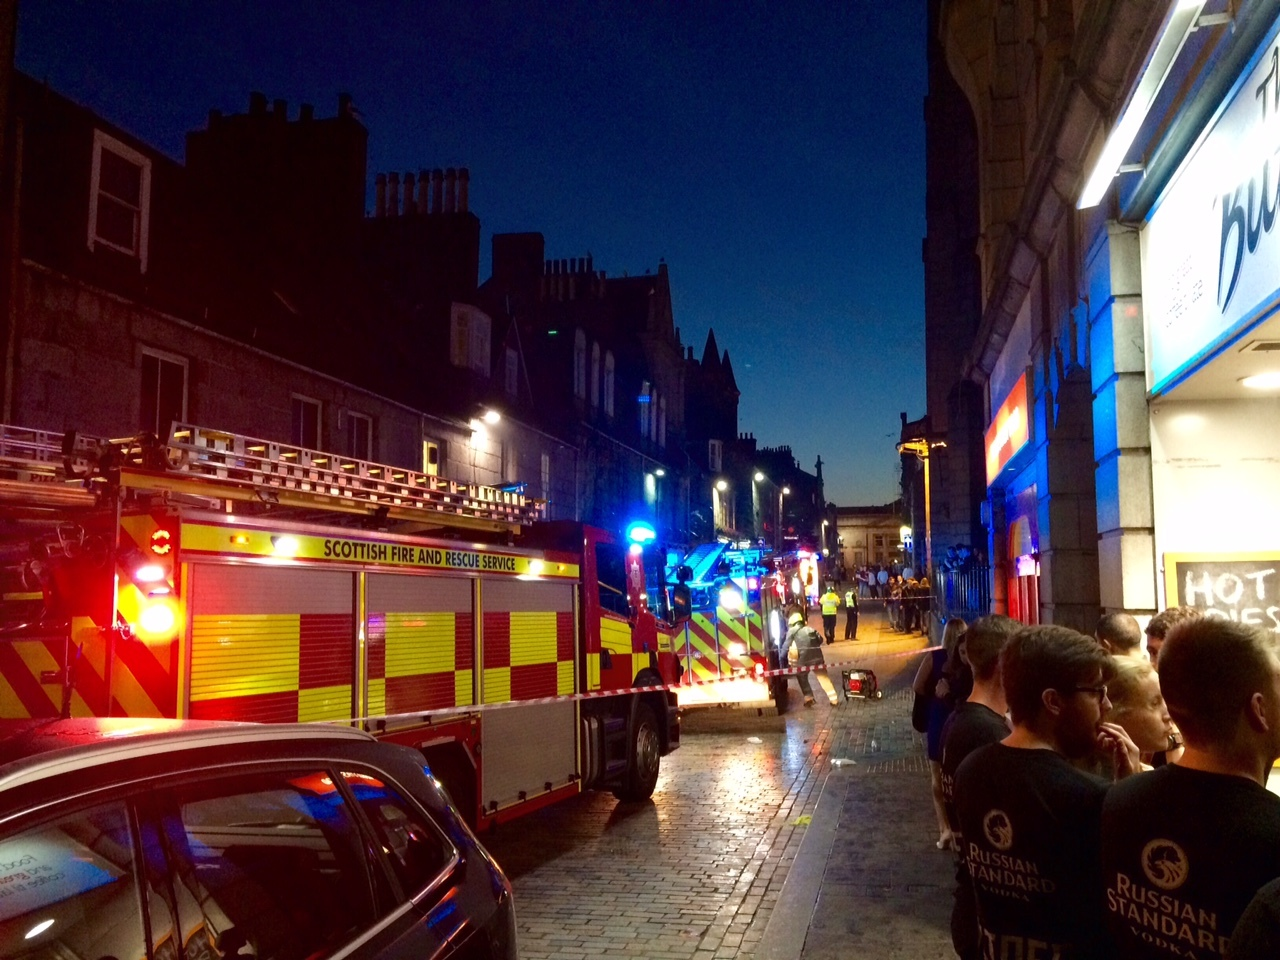 The Siberia bar was evacuated due to a small fire. Picture courtesy of Davy Shanks.